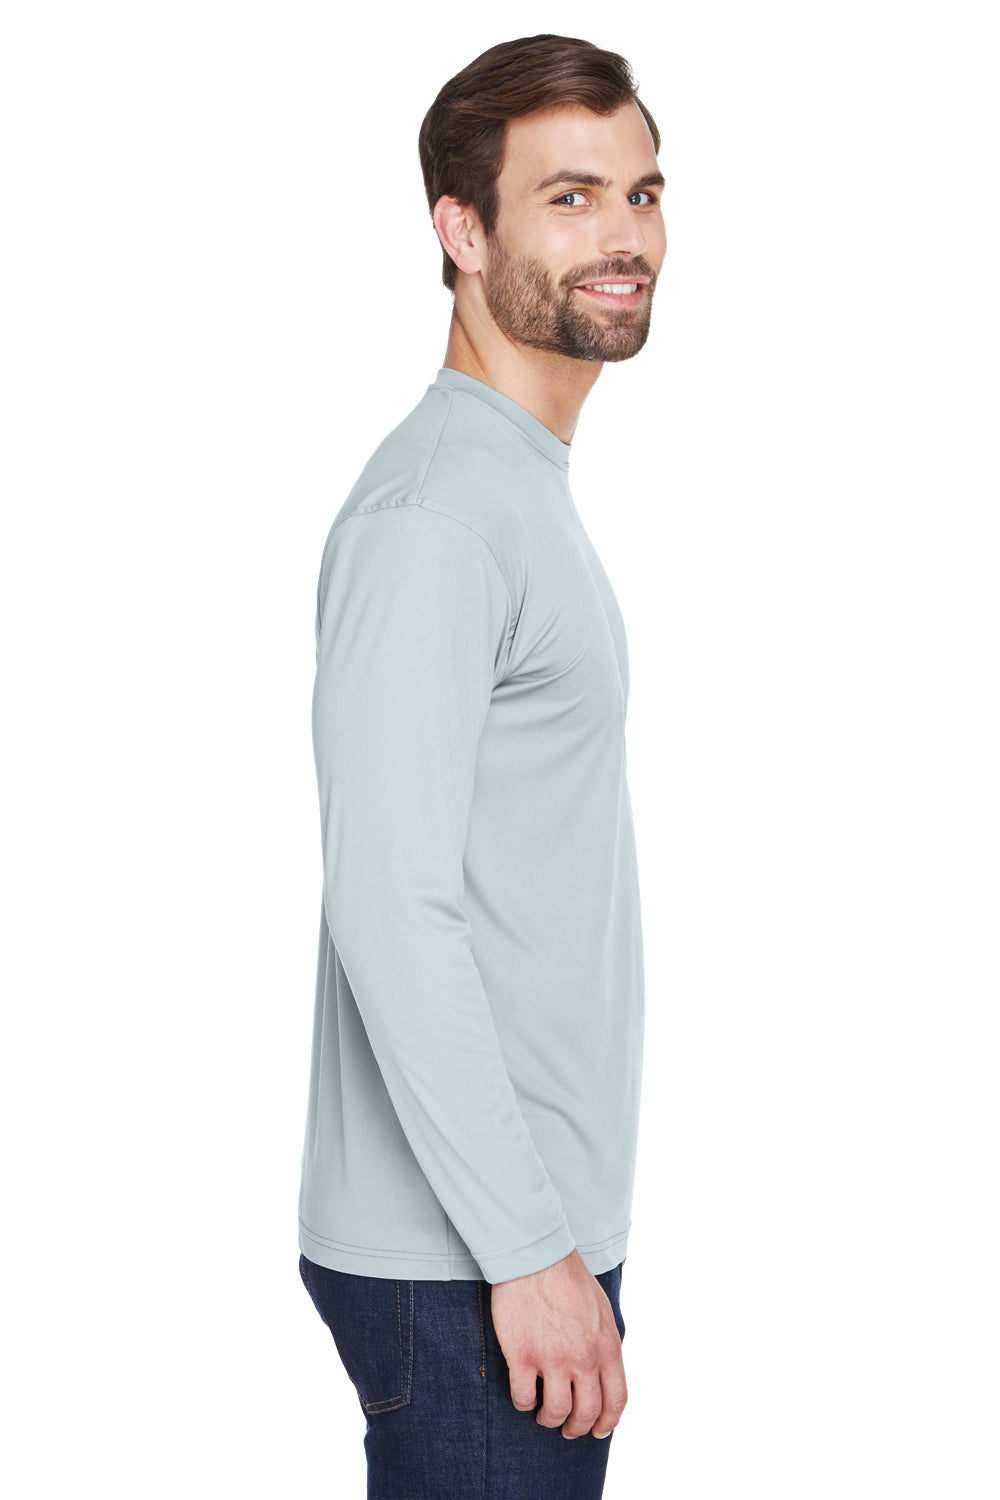 UltraClub 8422 Mens Cool & Dry Performance Moisture Wicking Long Sleeve Crewneck T-Shirt Grey Side